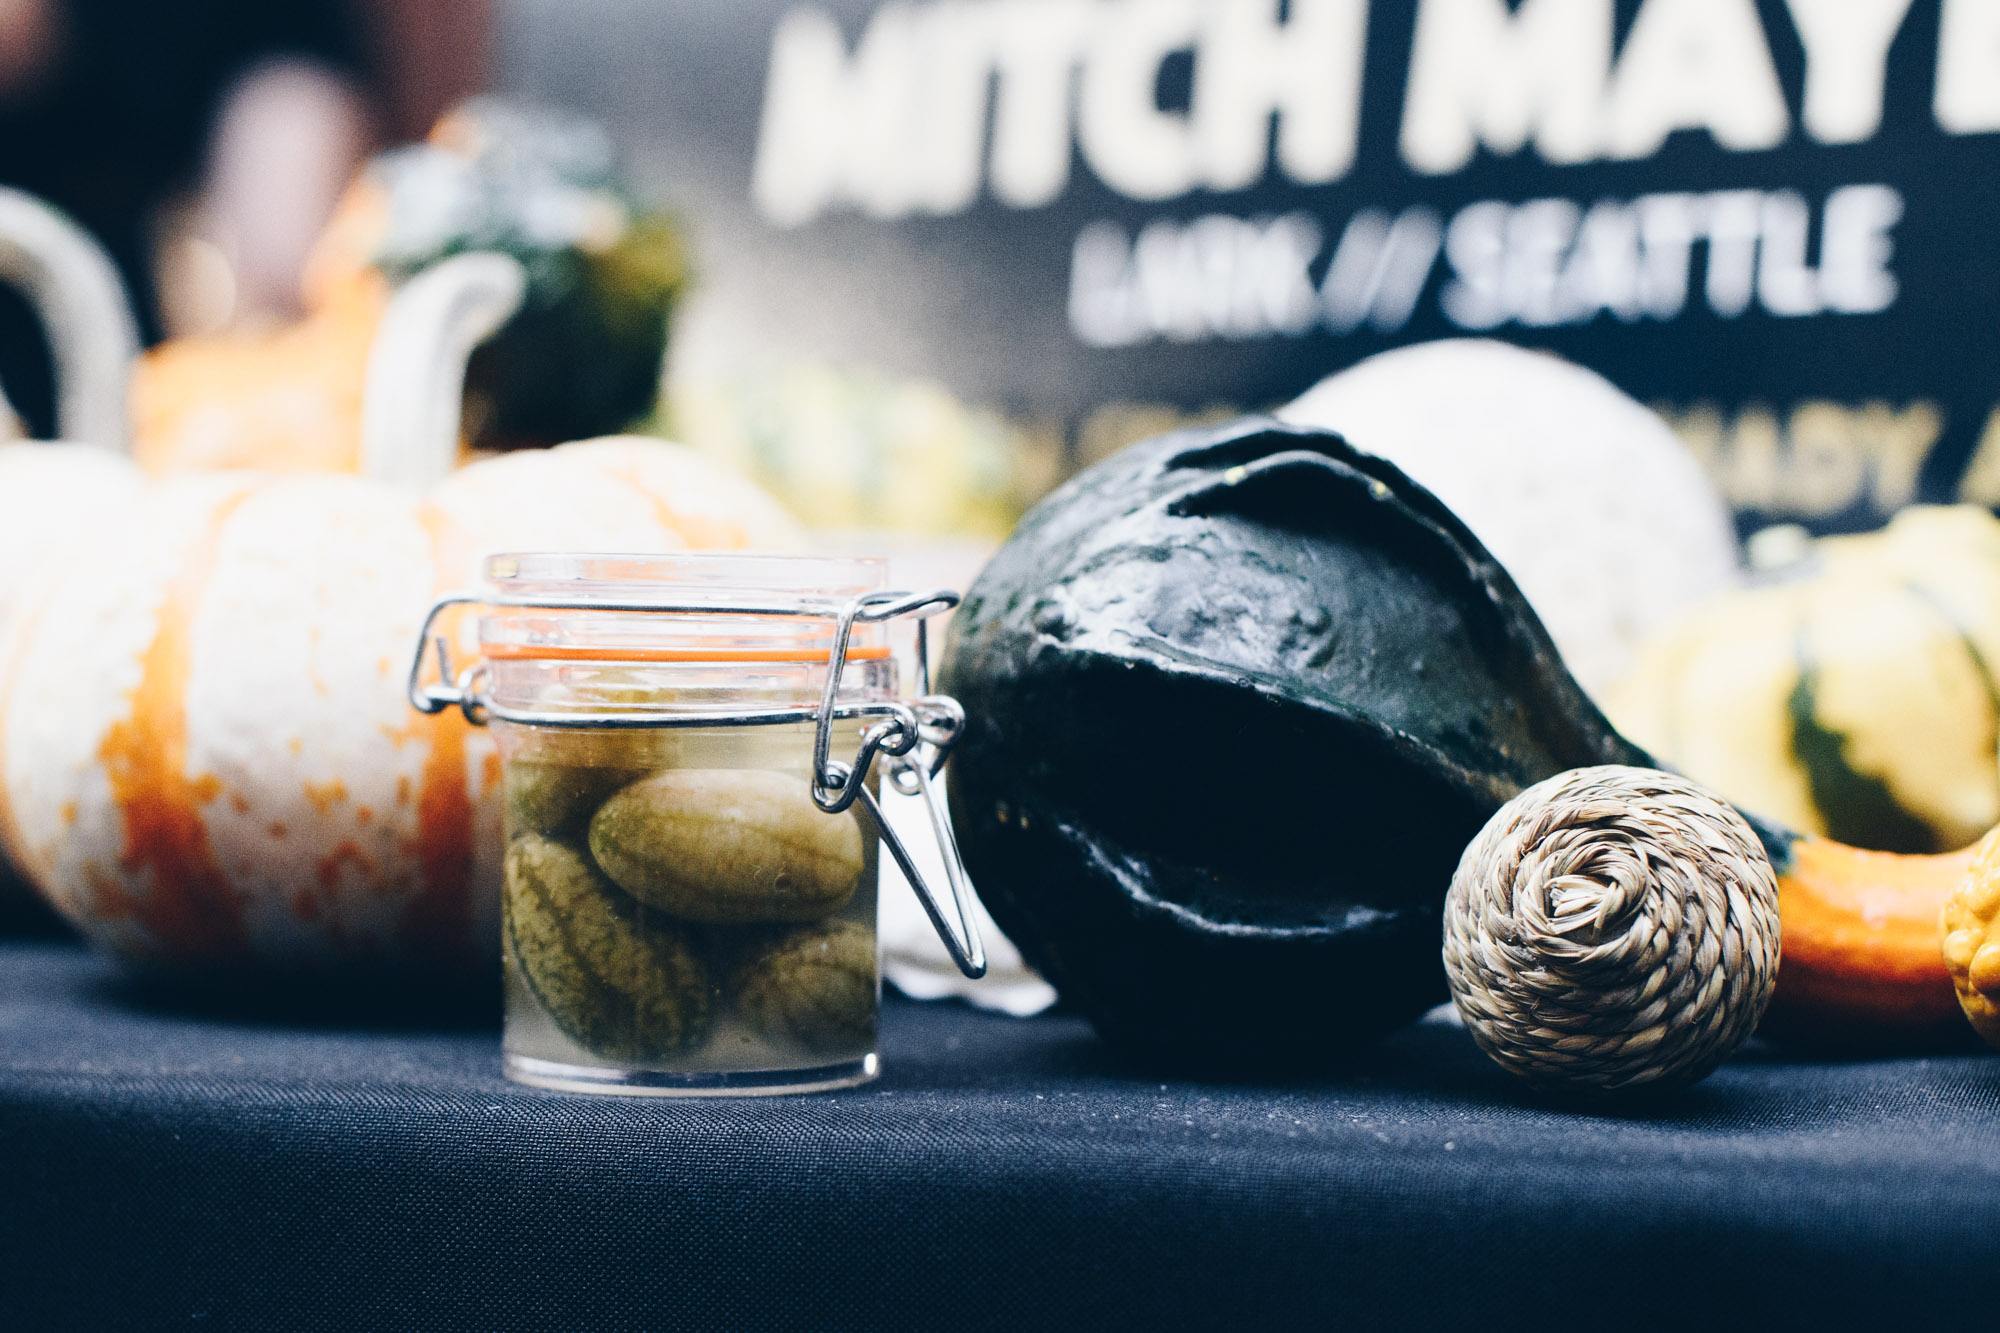 5. Mitch Mayers' Mini Pickles - There's something undeniably appealing about mini foods, and Chef Mitch Mayers' chubby little dills (served aside SPAM headcheese, blood rye bread, sauerkraut, and racelette cheese topped with a teensy quail egg and Russian hollandaise) were too cute not to grab my attention. Perhaps the Seattle-based chef had foreseen their appeal, because he was so kind as to provide tiny take-home jars of the little guys for us admirers to snack on later.